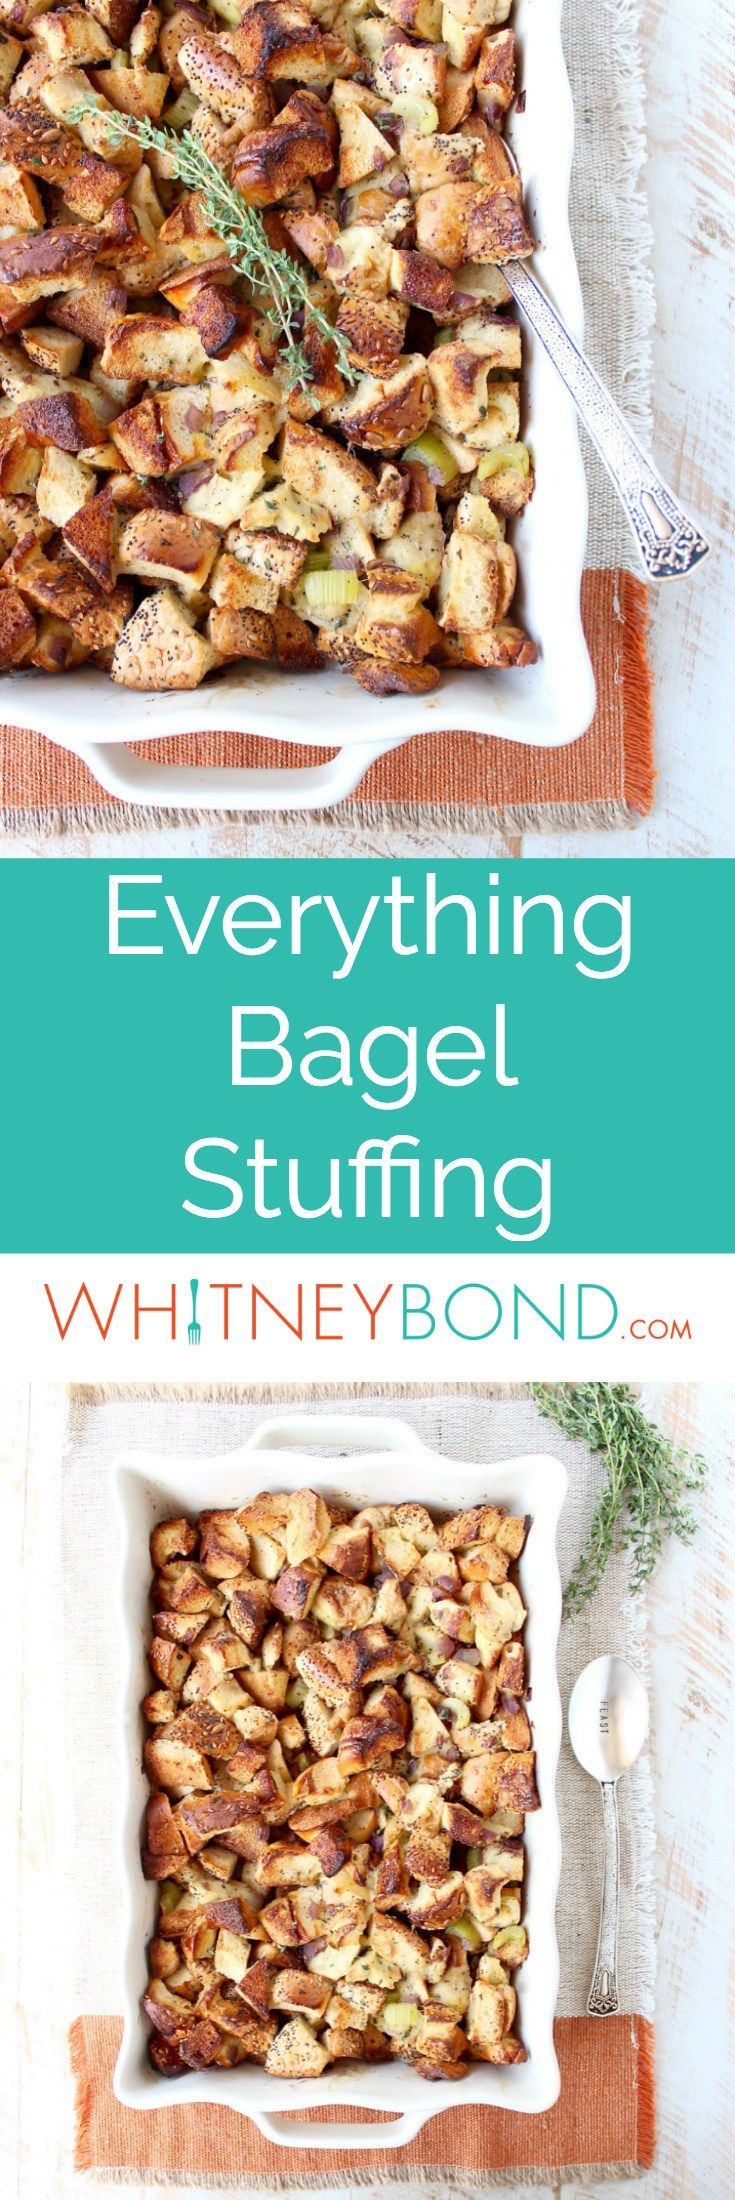 Everything Bagel Stuffing is a fun twist on traditional stuffing that's easy to make for Thanksgiving, Friendsgiving or as a side dish anytime of the year!